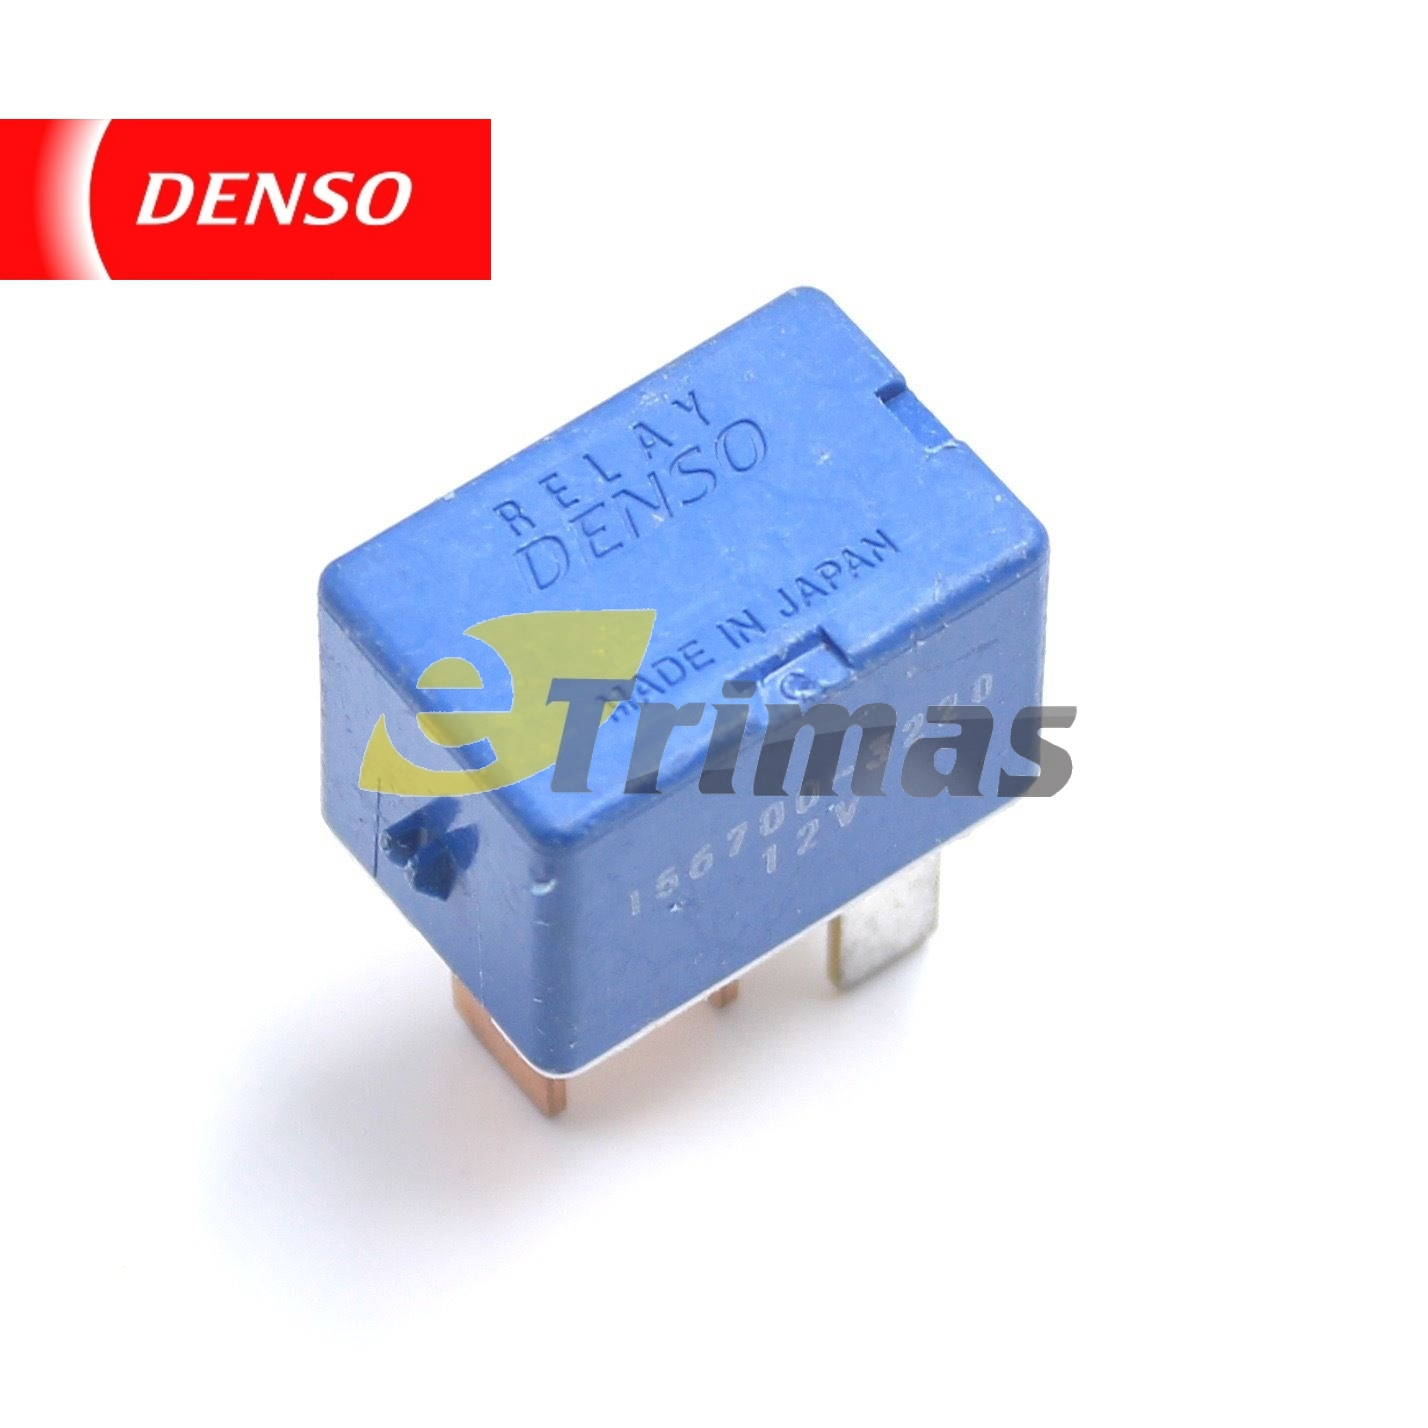 Fantastic Vehicle Alarm Wiring Diagram Small Dimarzio Switch Solid Car Alarm Installation Wiring Diagram Bulldog Remote Start Manual Old Bulldog Security Remote Vehicle Starter System GraySuper Switch Wiring 2019 9:16 PM)